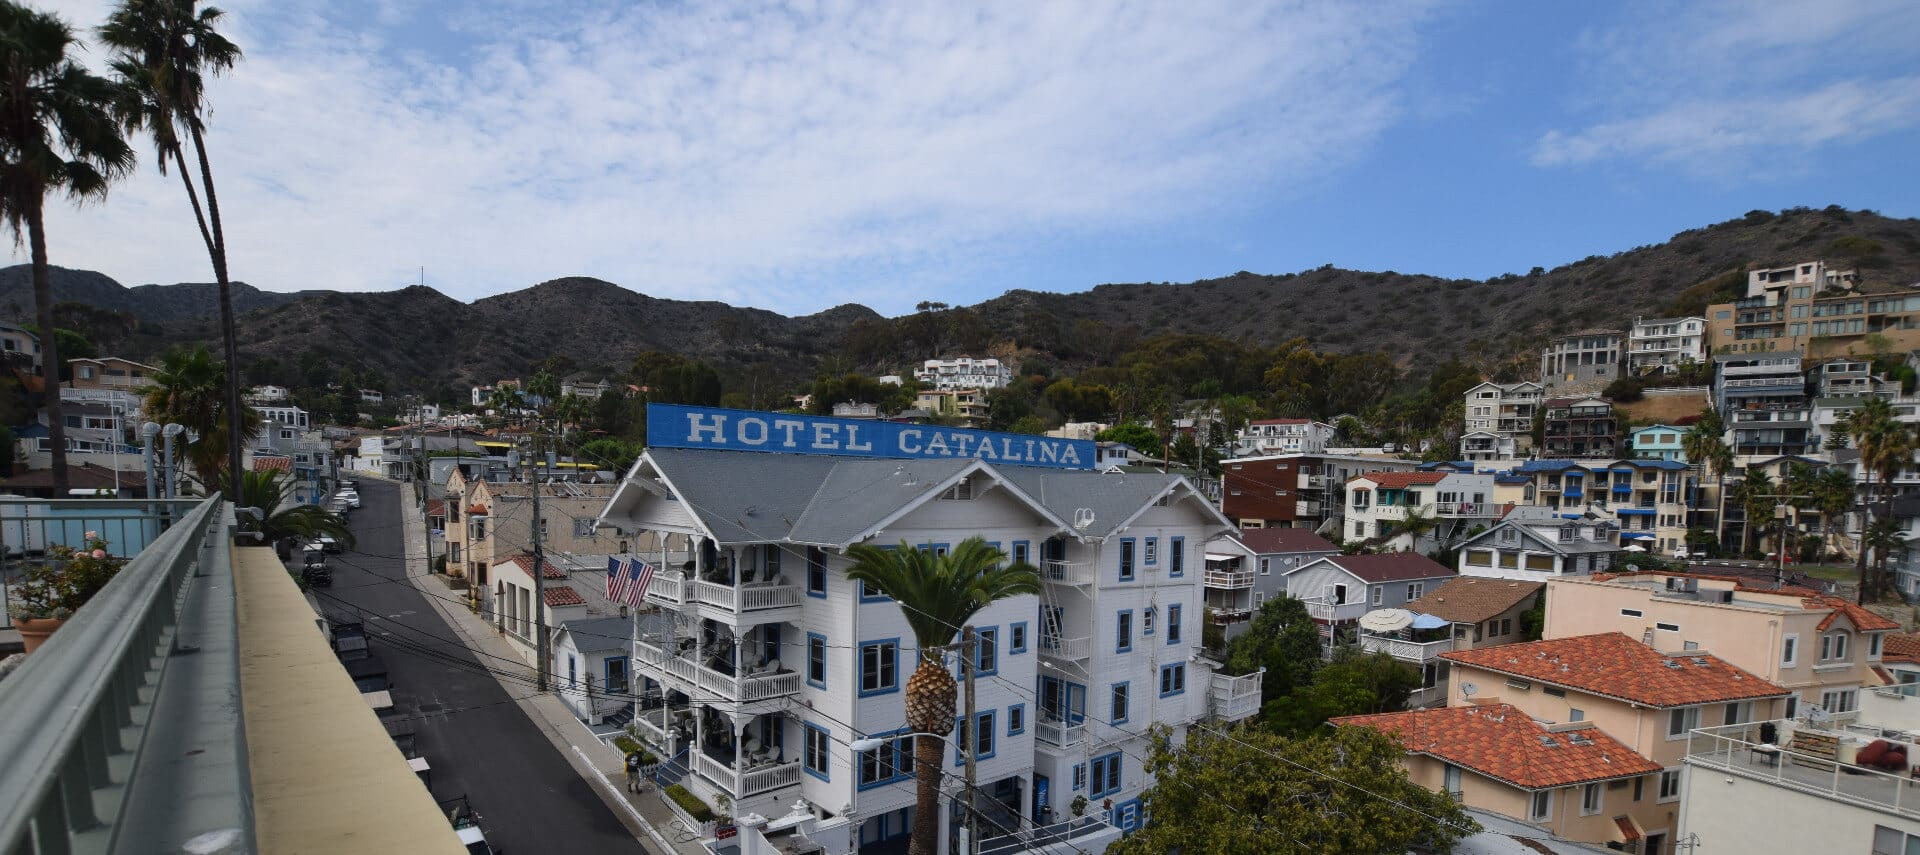 Overhead view of large white building with a blue sign saying Hotel Catalina